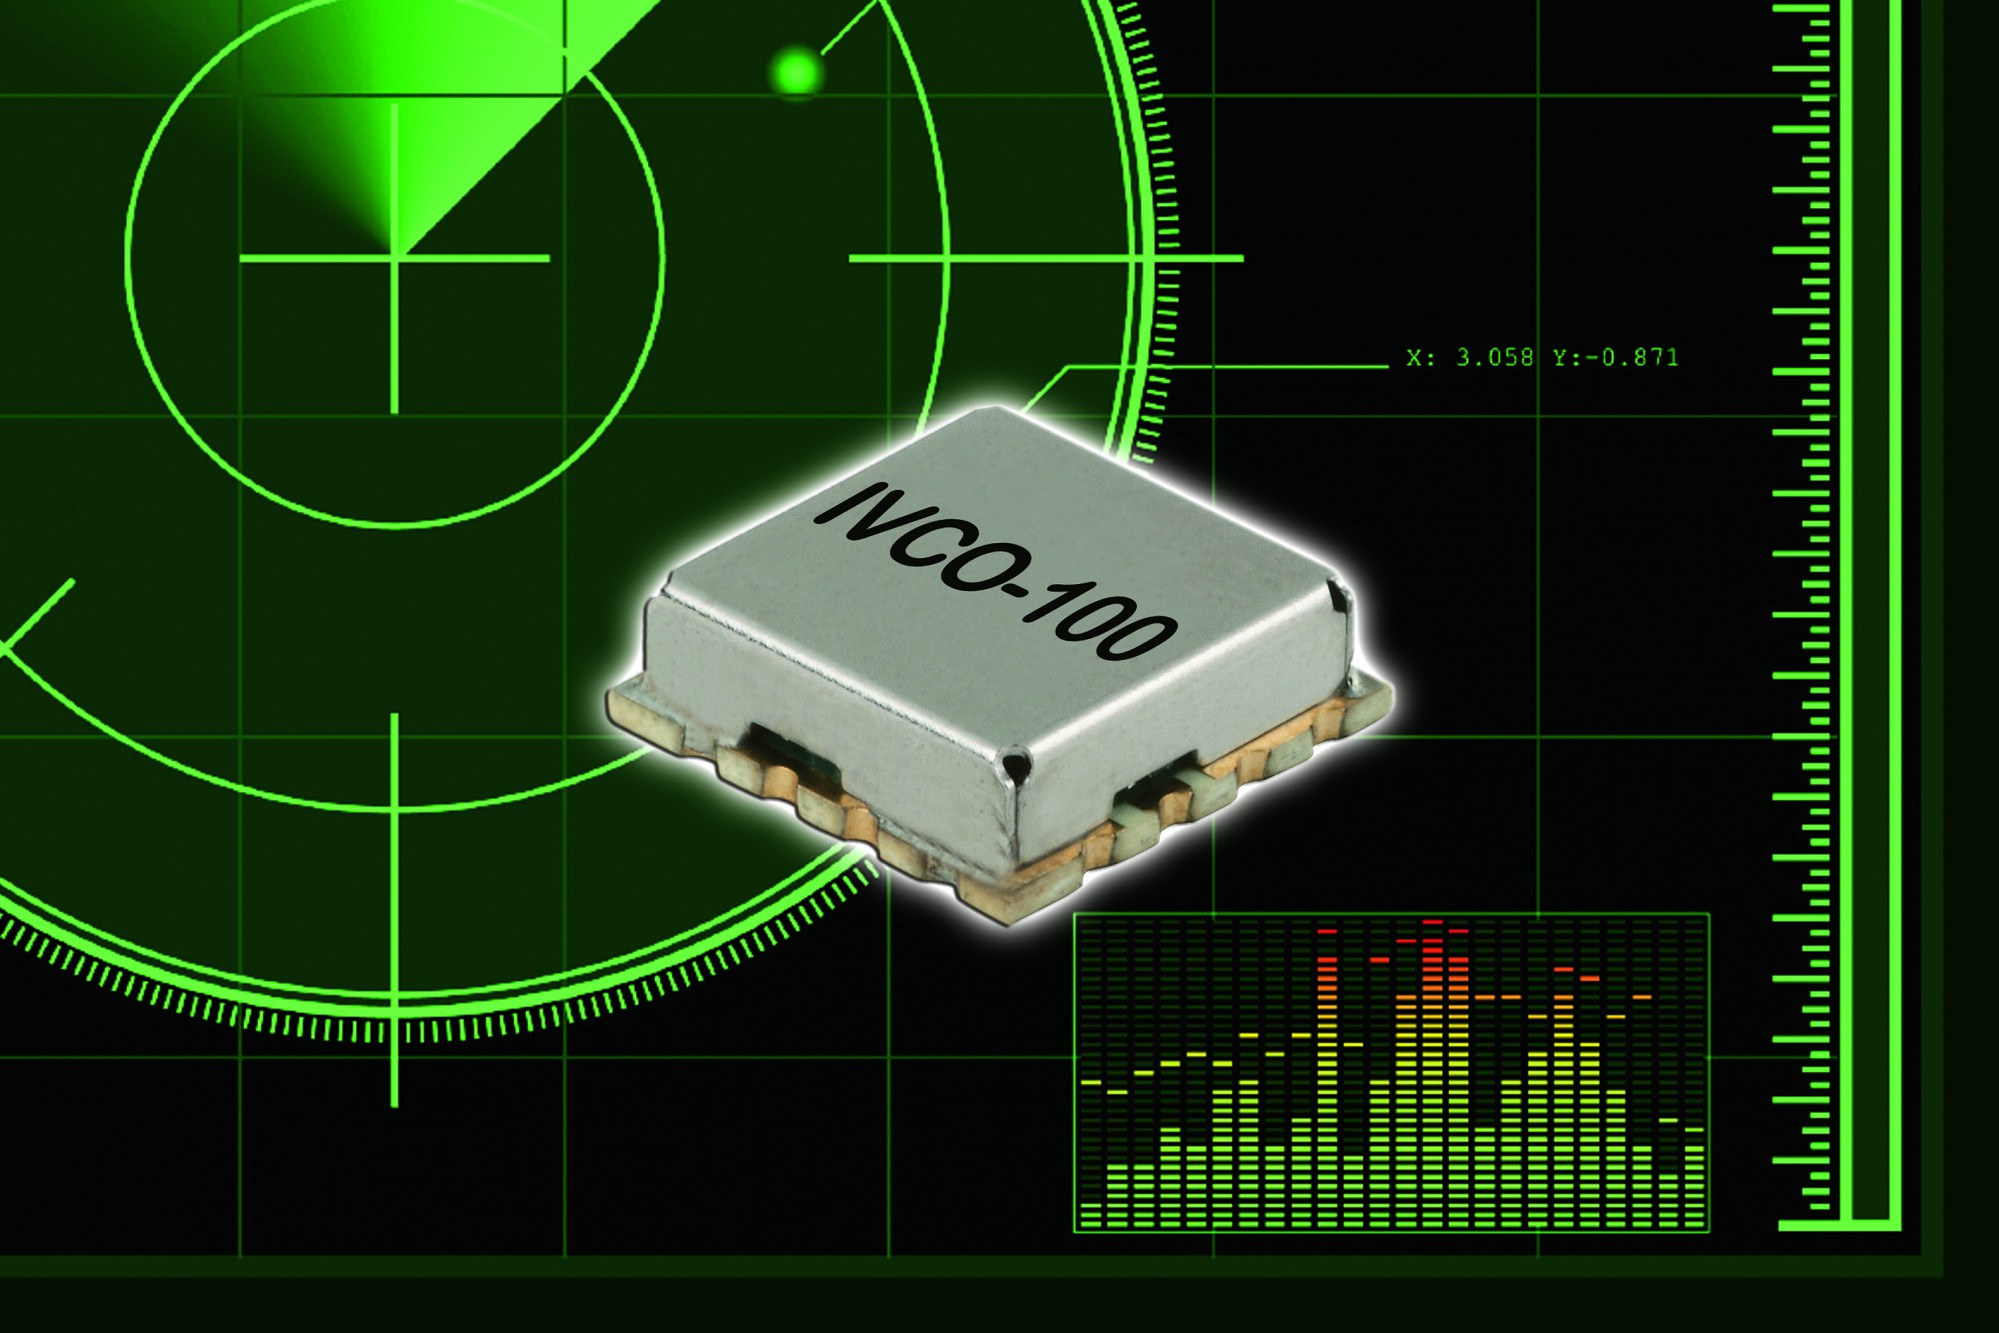 Wide frequency range VCO series delivers excellent phase noise performance